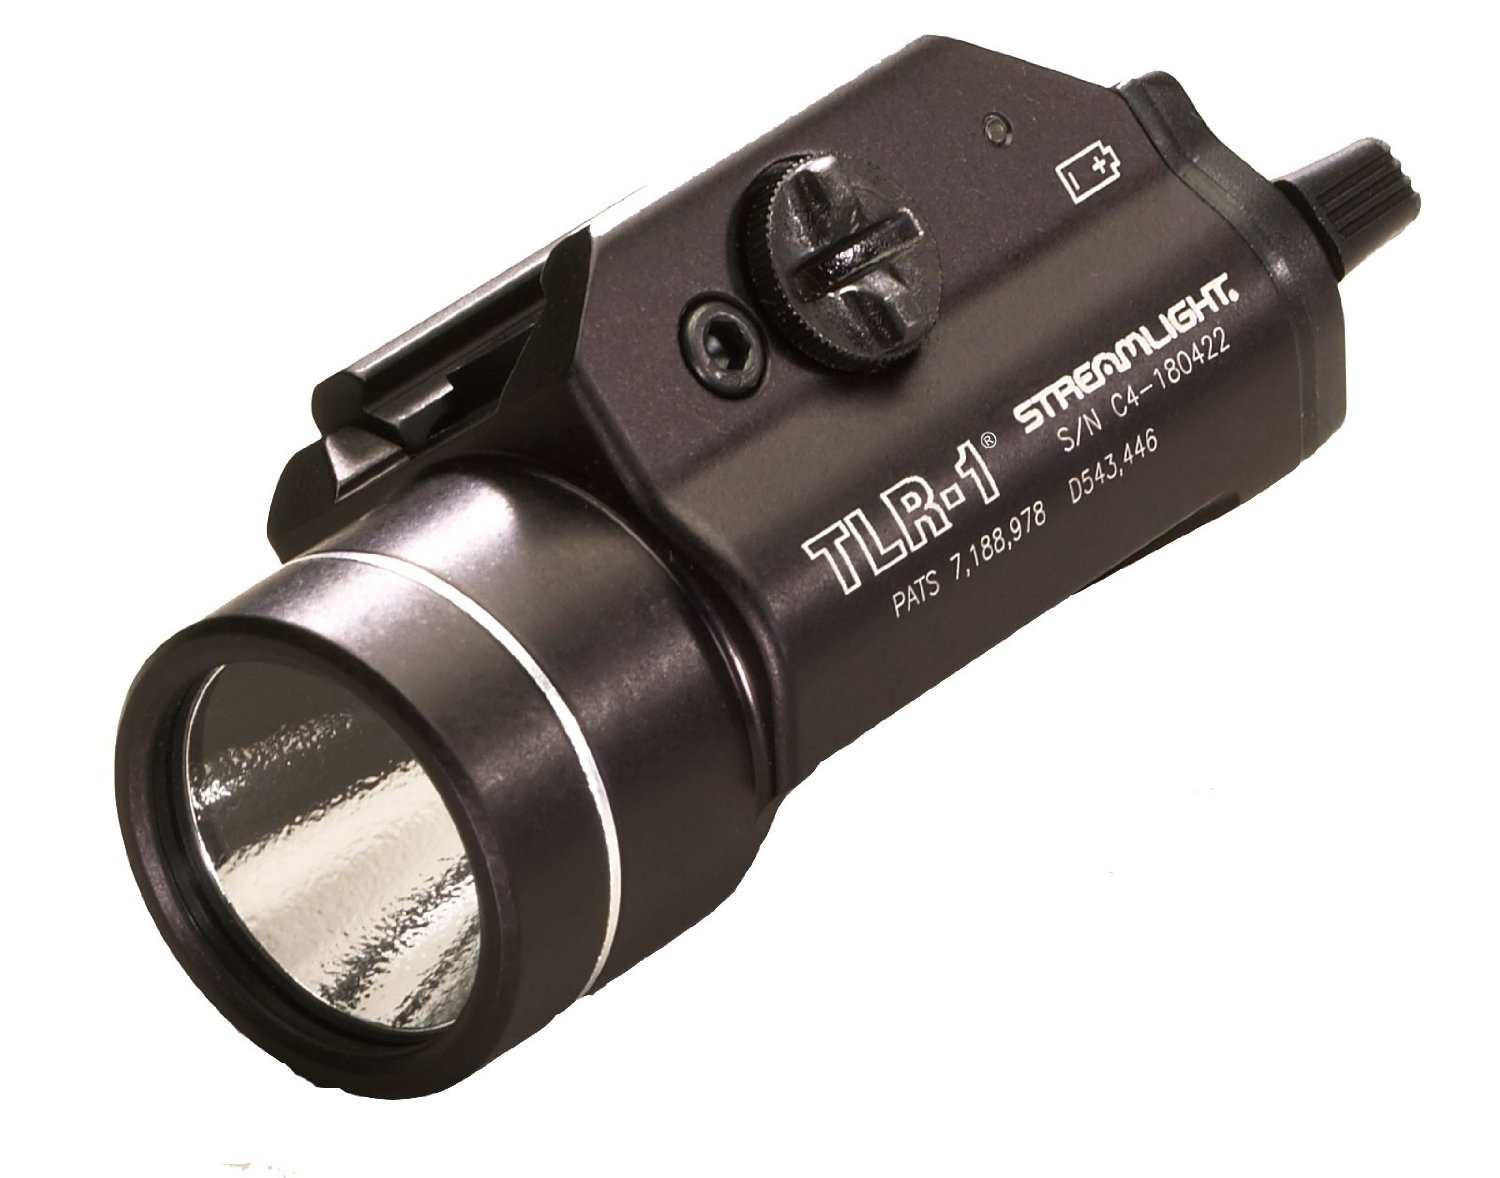 Mount this to your sidearm or patrol rifle and you'll always have enough light to get the job done.